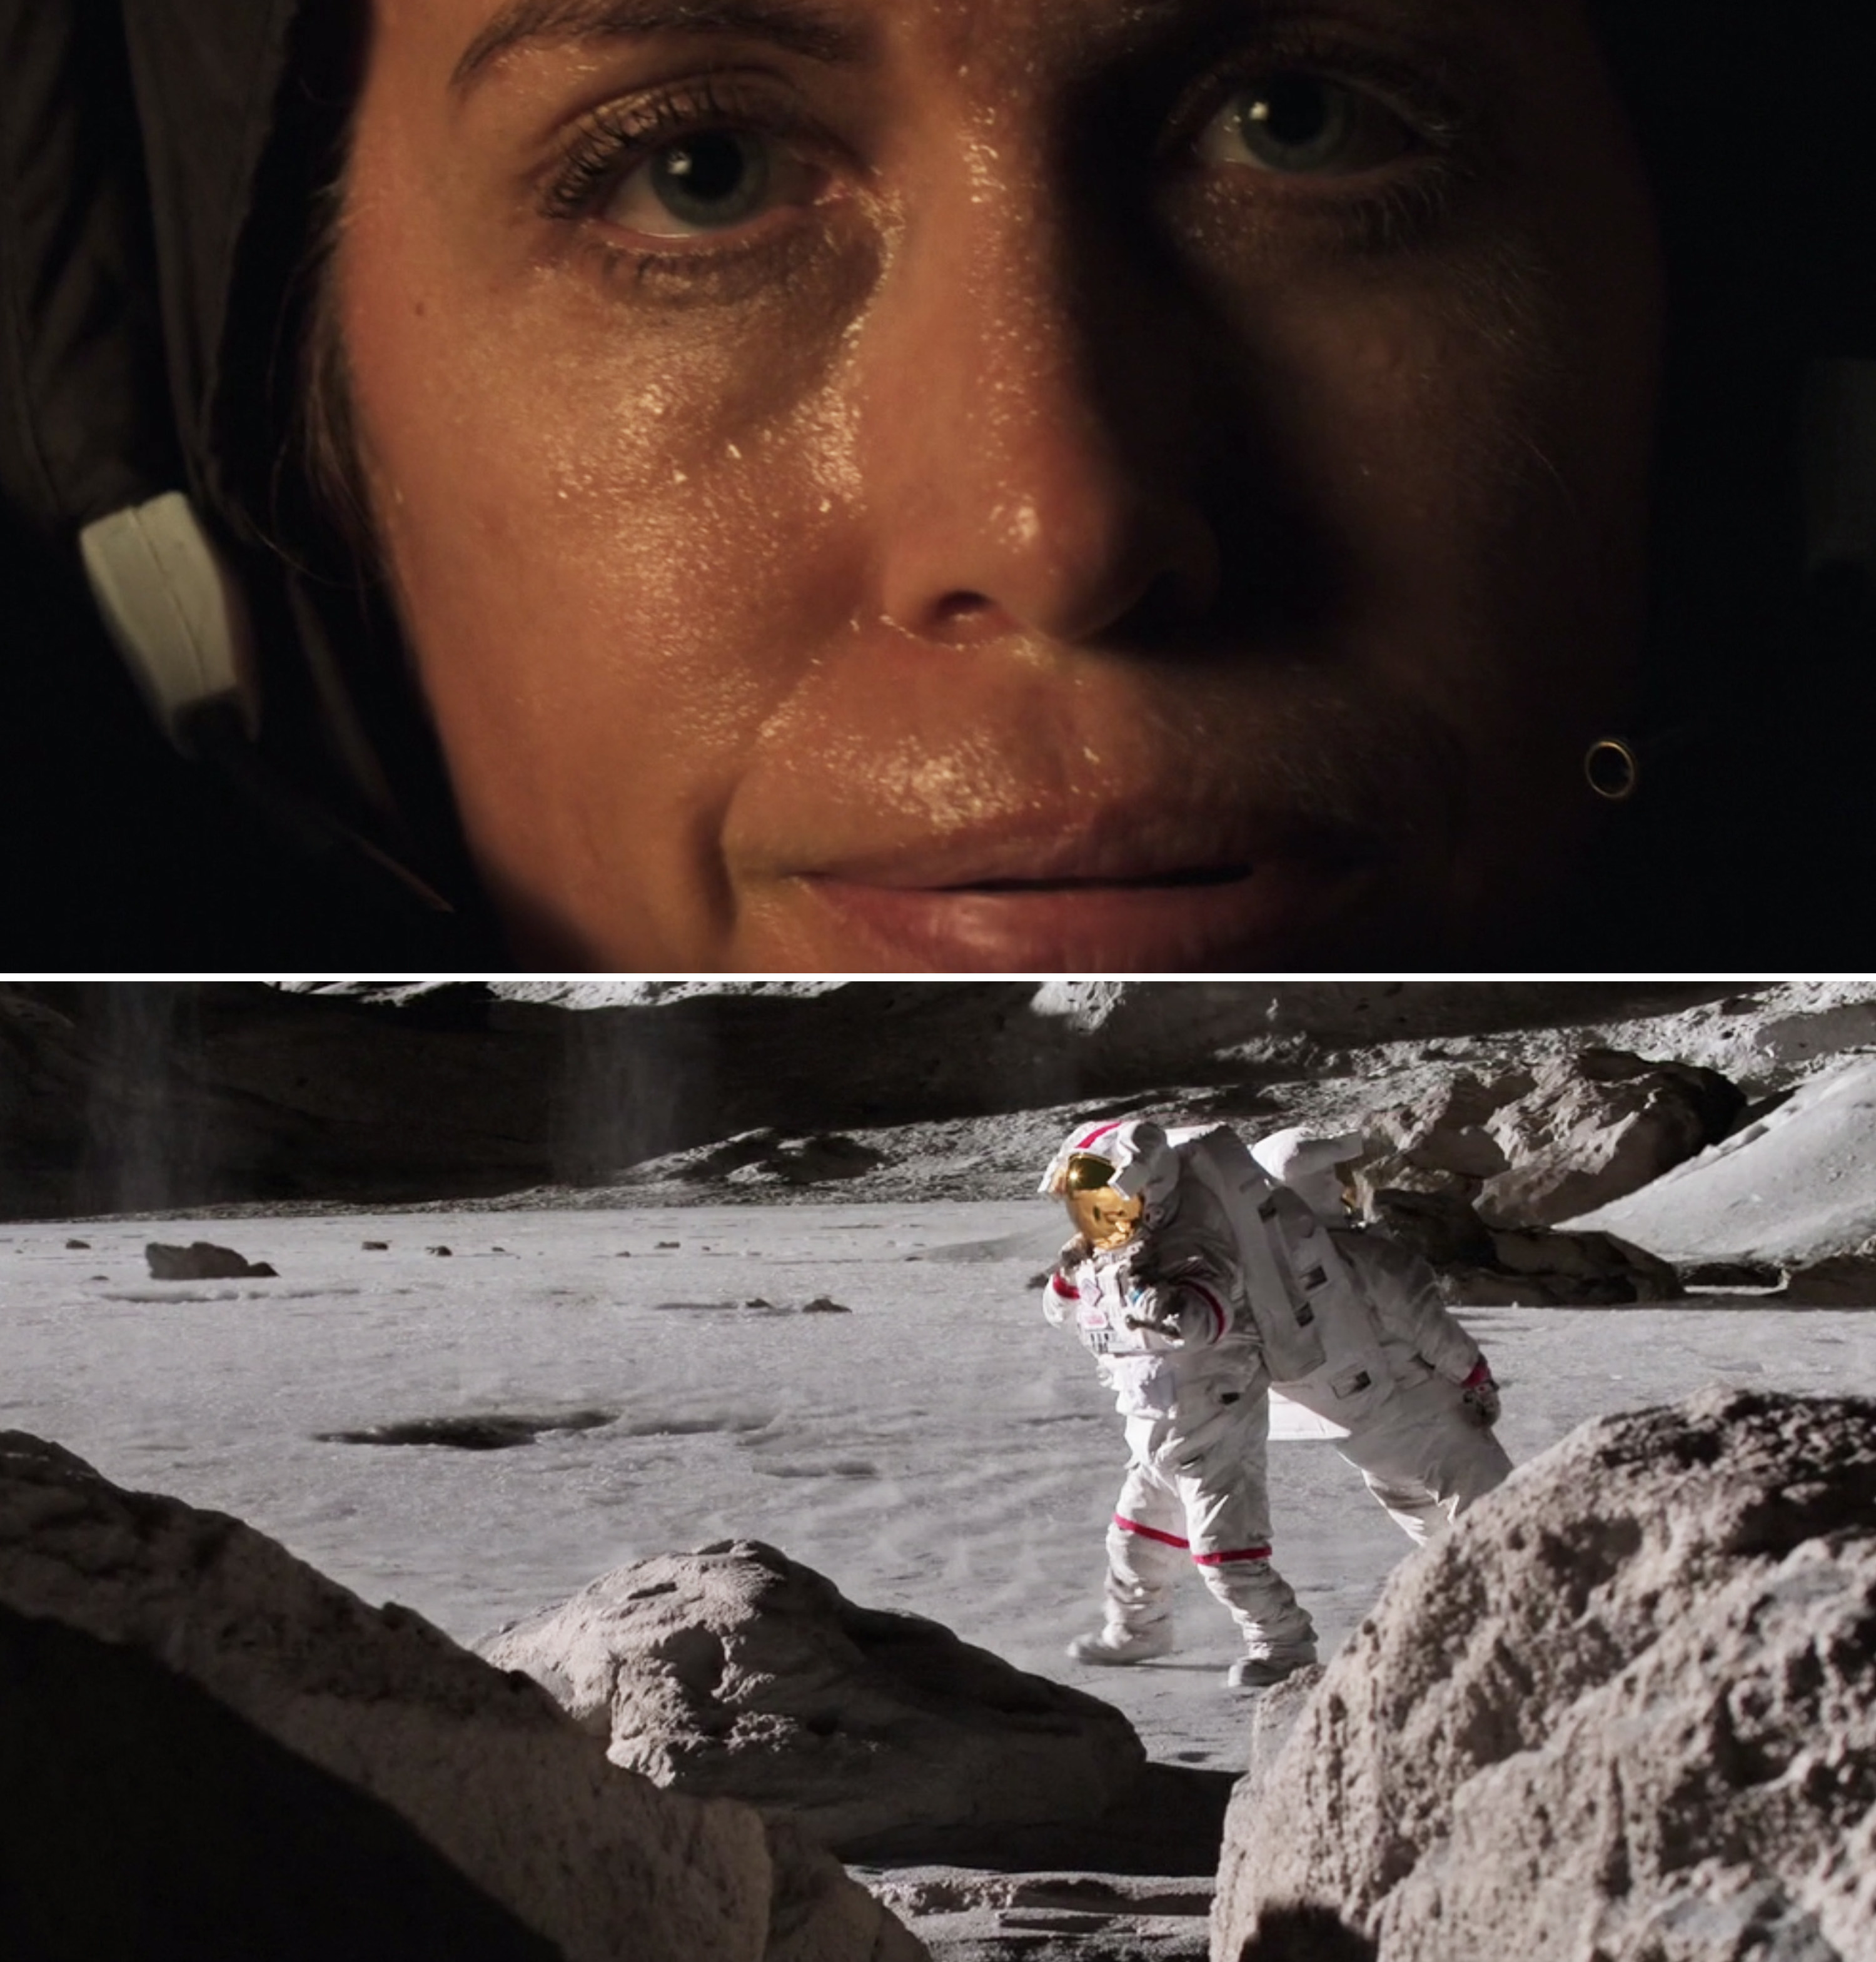 Molly sweating in her astronaut suit while carrying a fellow astronaut on her back on the moon